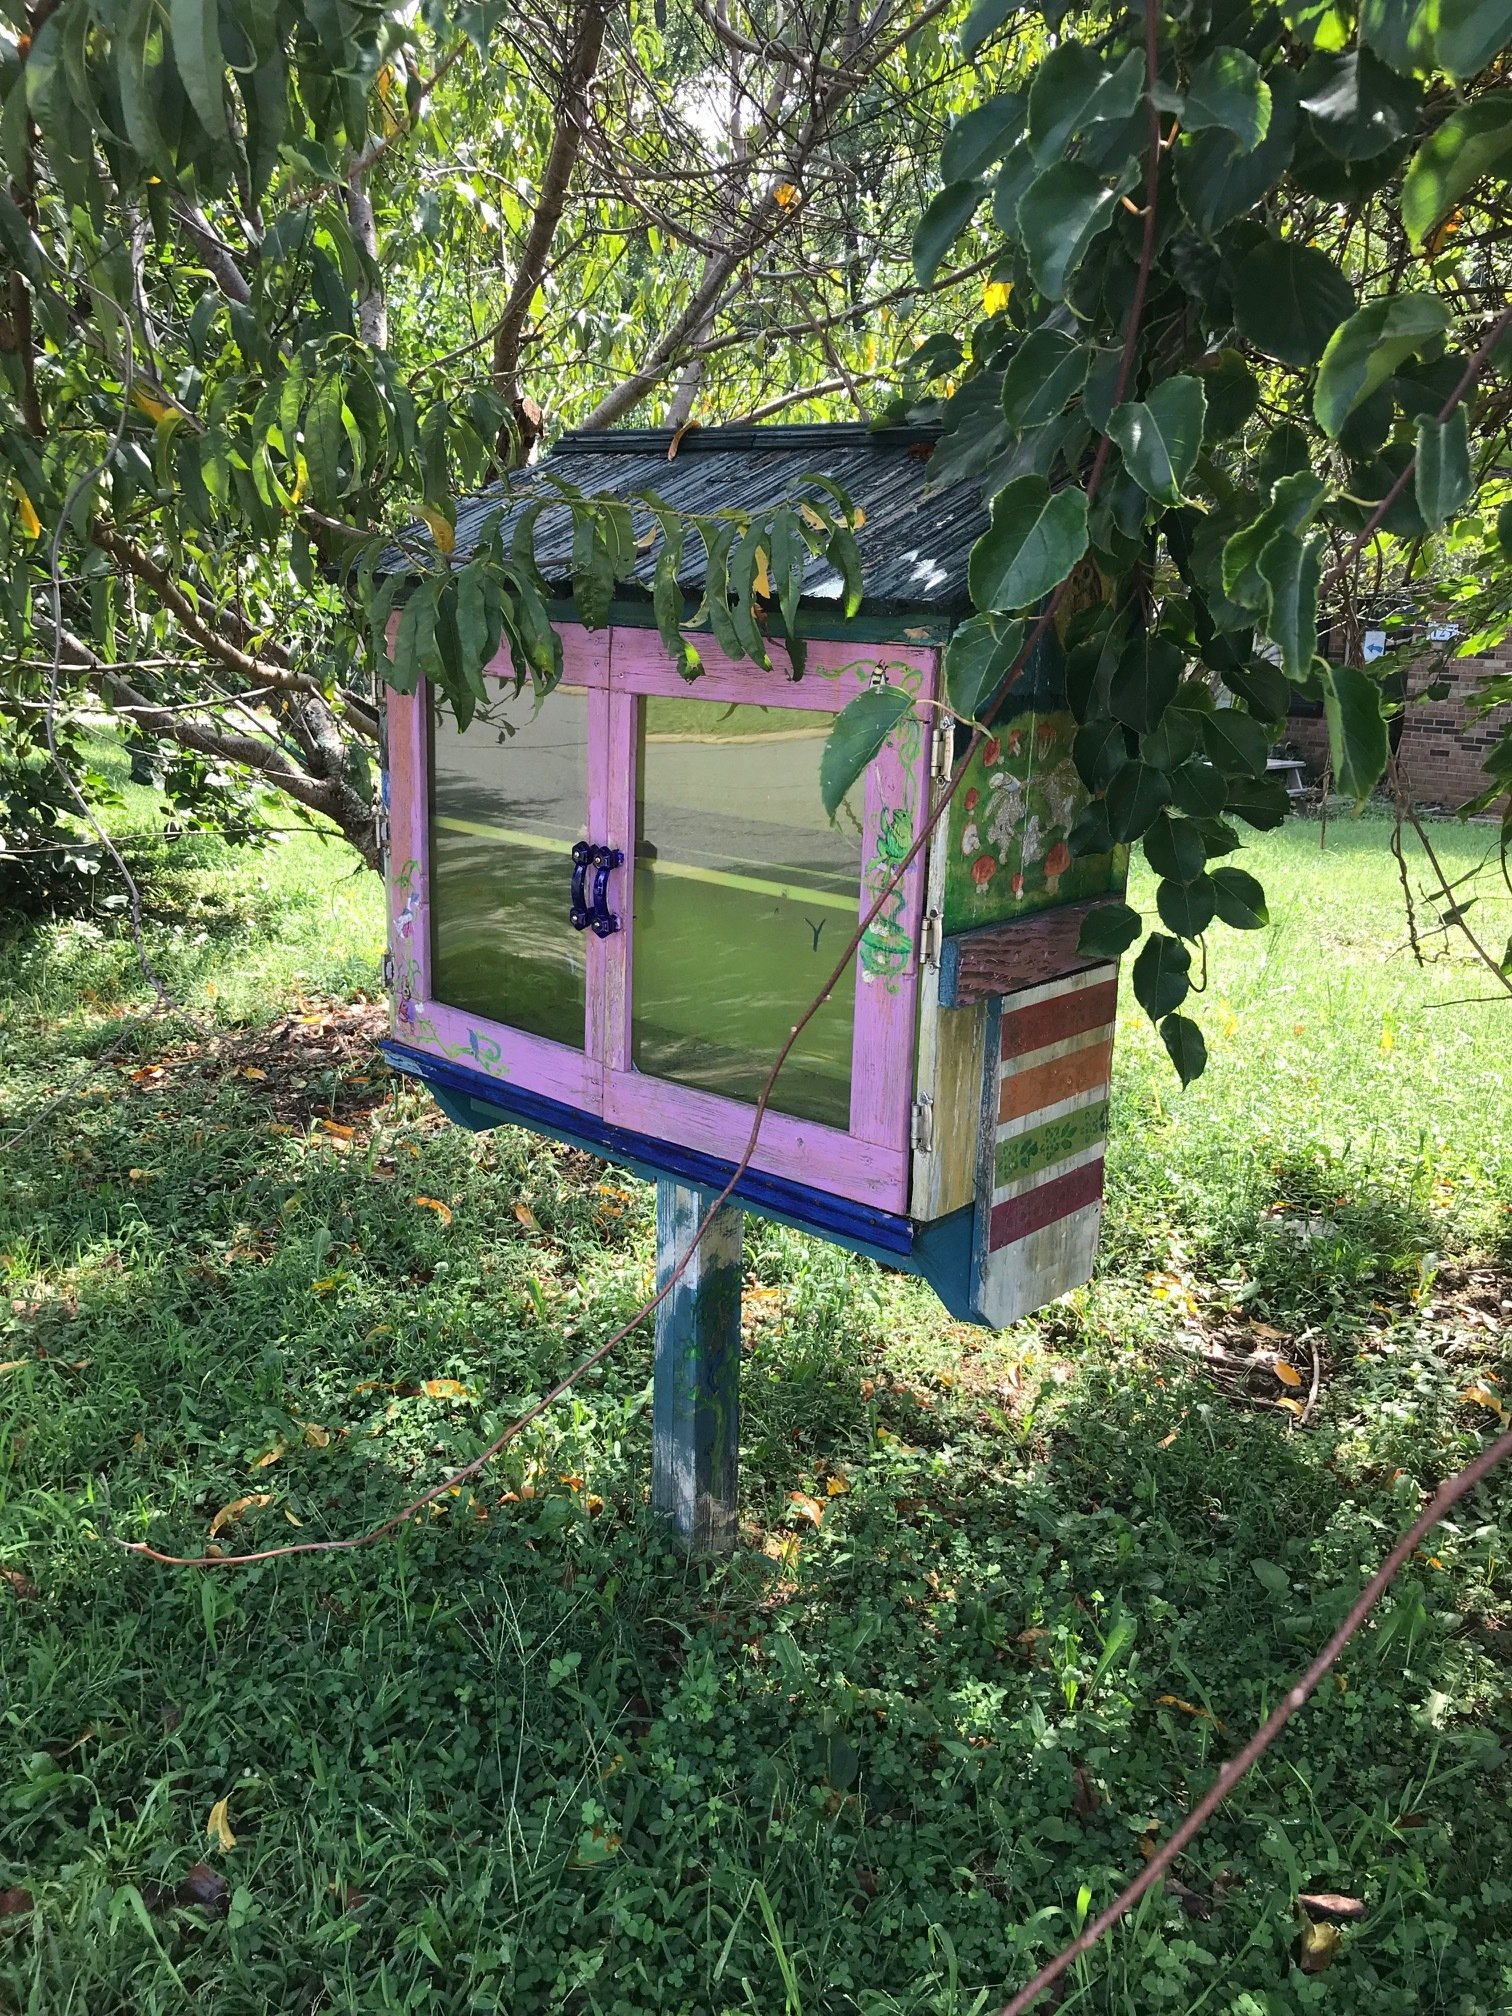 Little Free Library Stats - 3 out of 4 people report they've read a book they normally would not have read because of a Little Free Library73% of people say they've met new neighbors because of a Little Free Library92% of people say their neighborhood feels like a friendlier place because of a Little Free Library